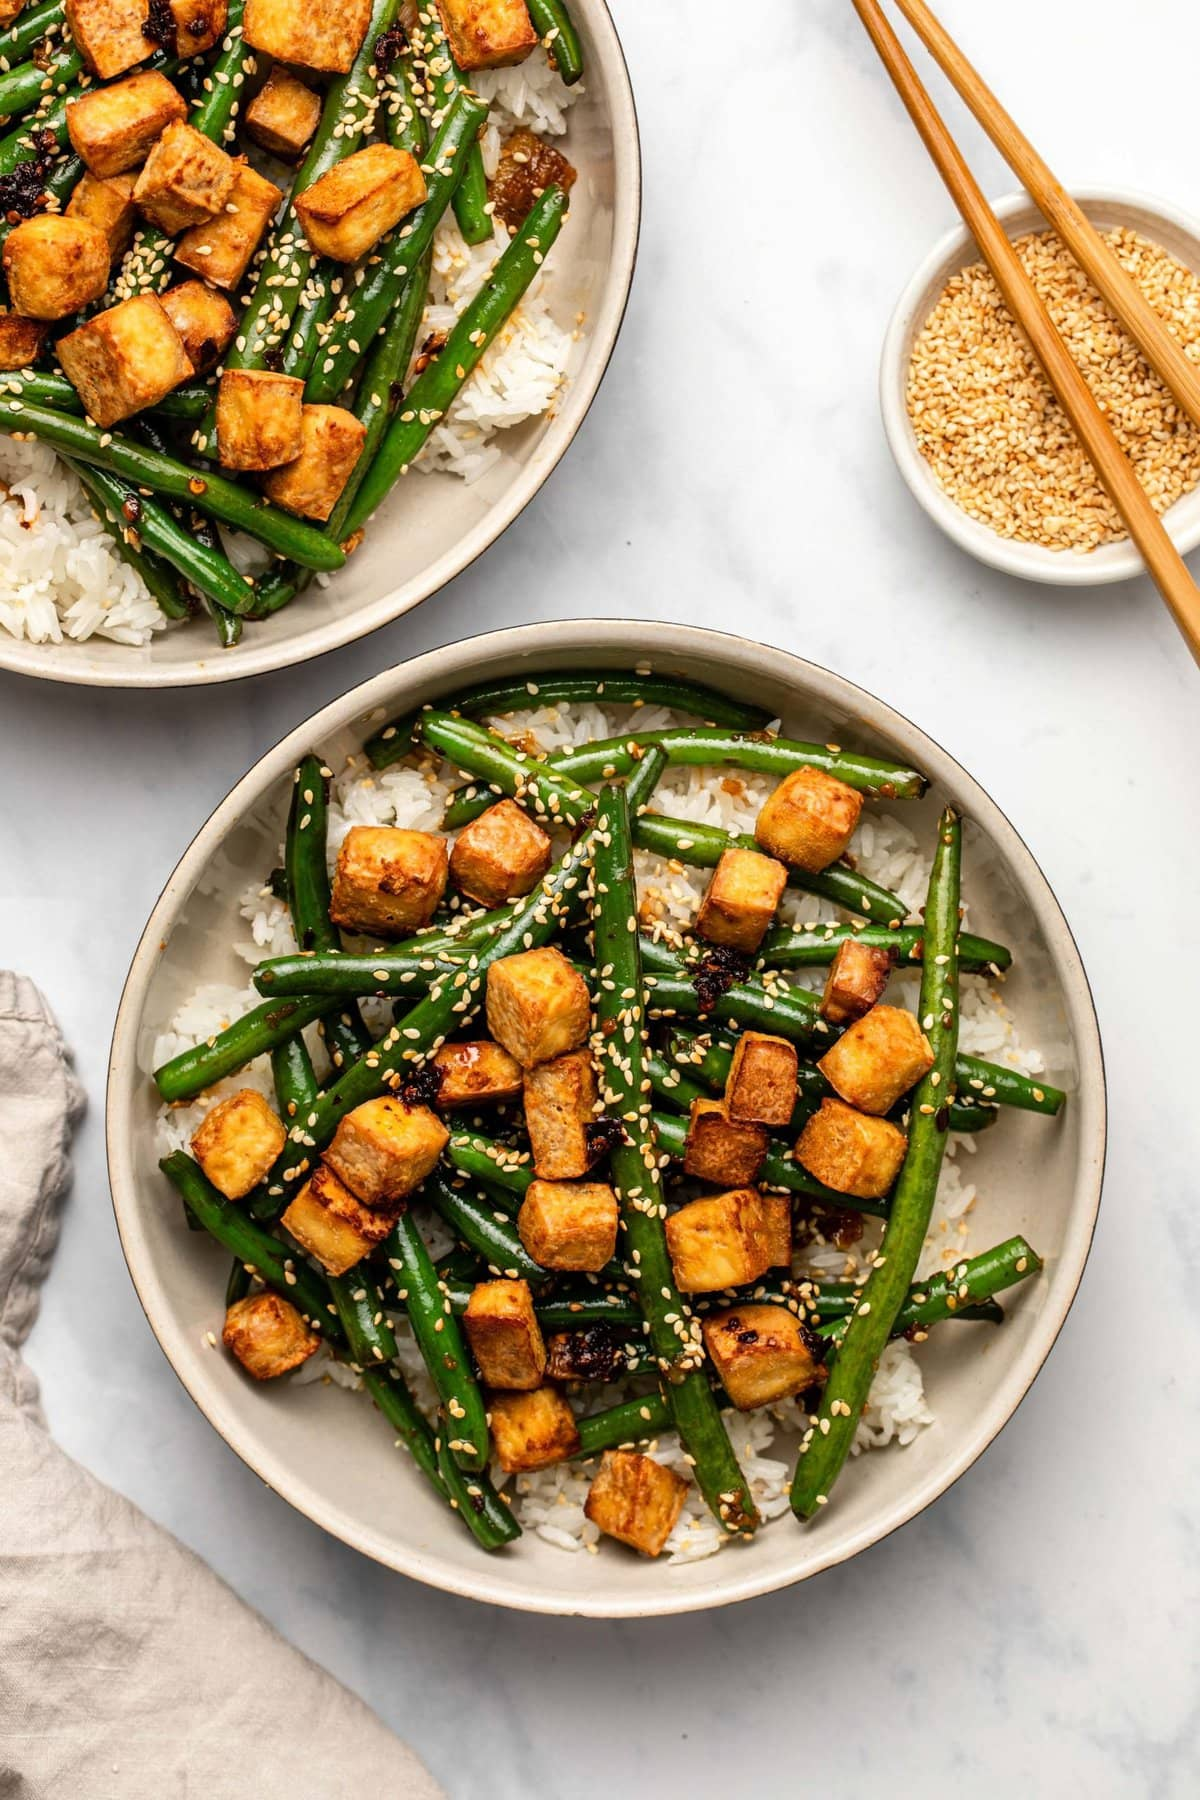 Two large bowls of garlic green bean stir fry with crispy tofu over white rice. A small bowl of toasted sesame seed sits off to the side with a pair of wooden chopsticks